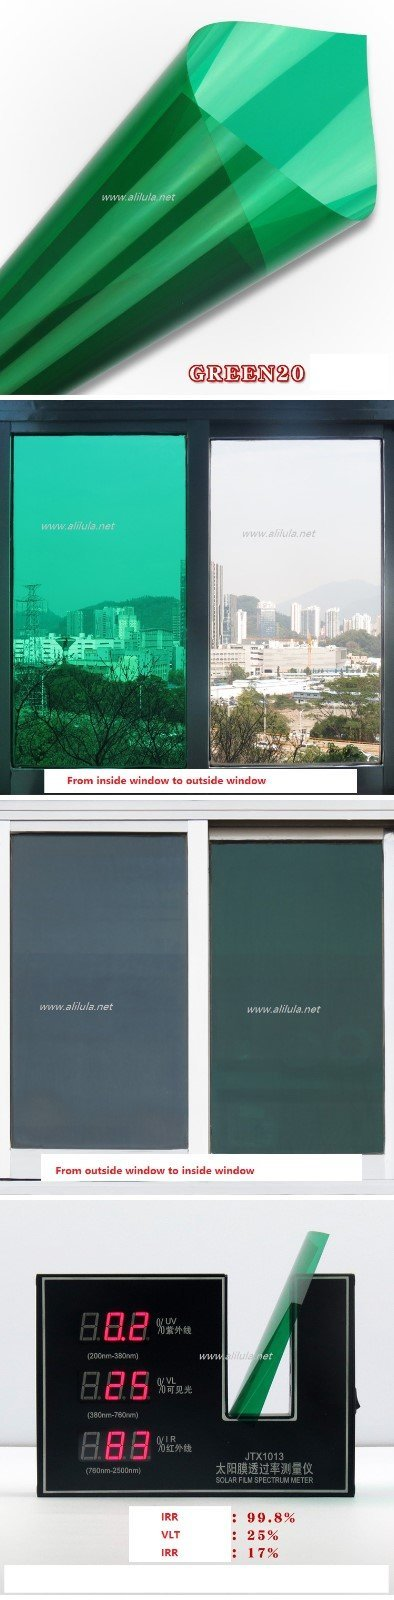 Green Non-reflective Two-way Perspective Decoration Building Tint, Item:Green20